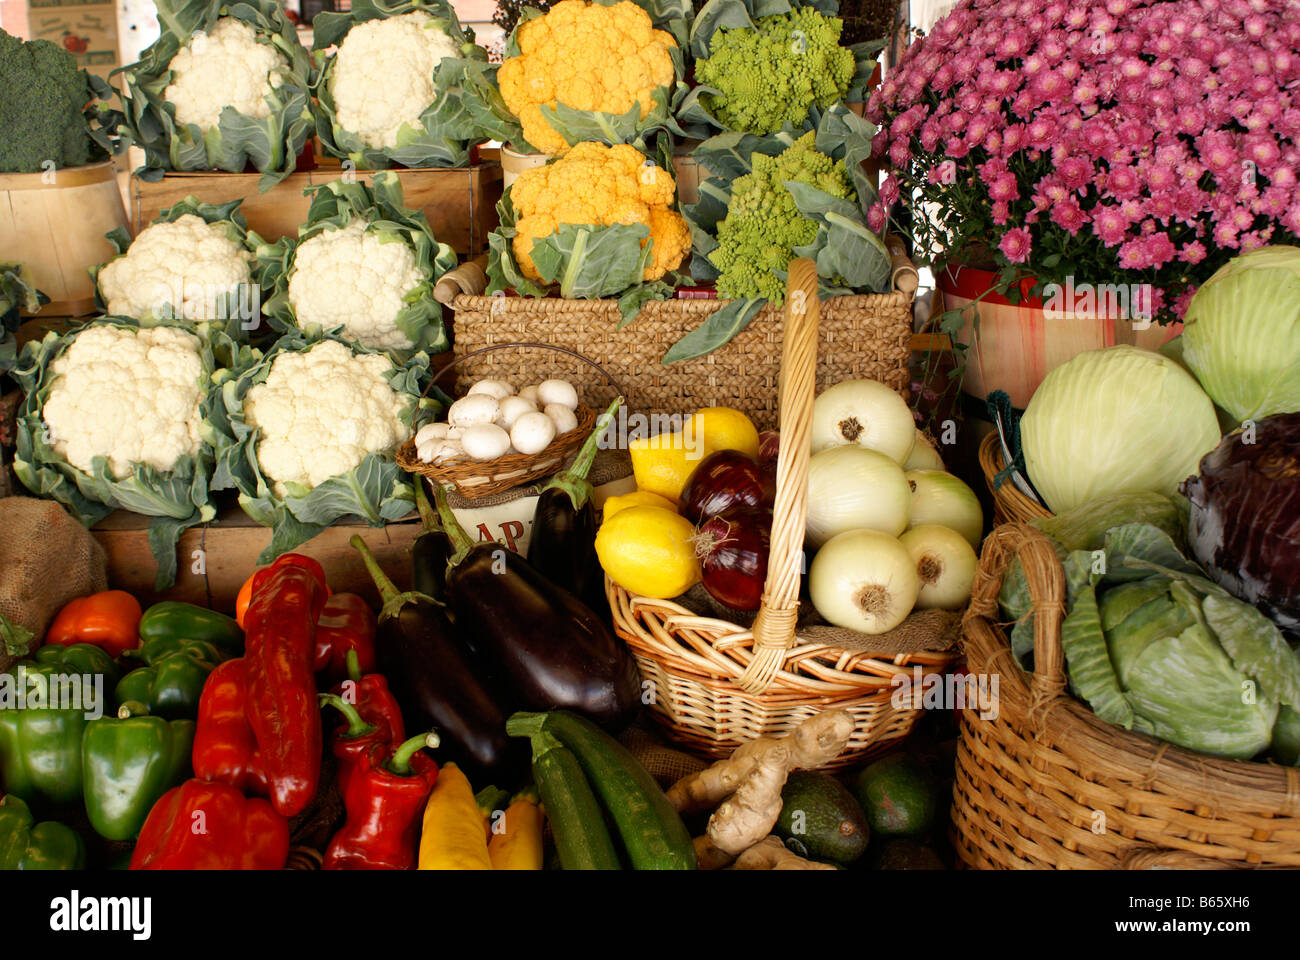 baskets-of-fresh-vegetables-for-sale-in-